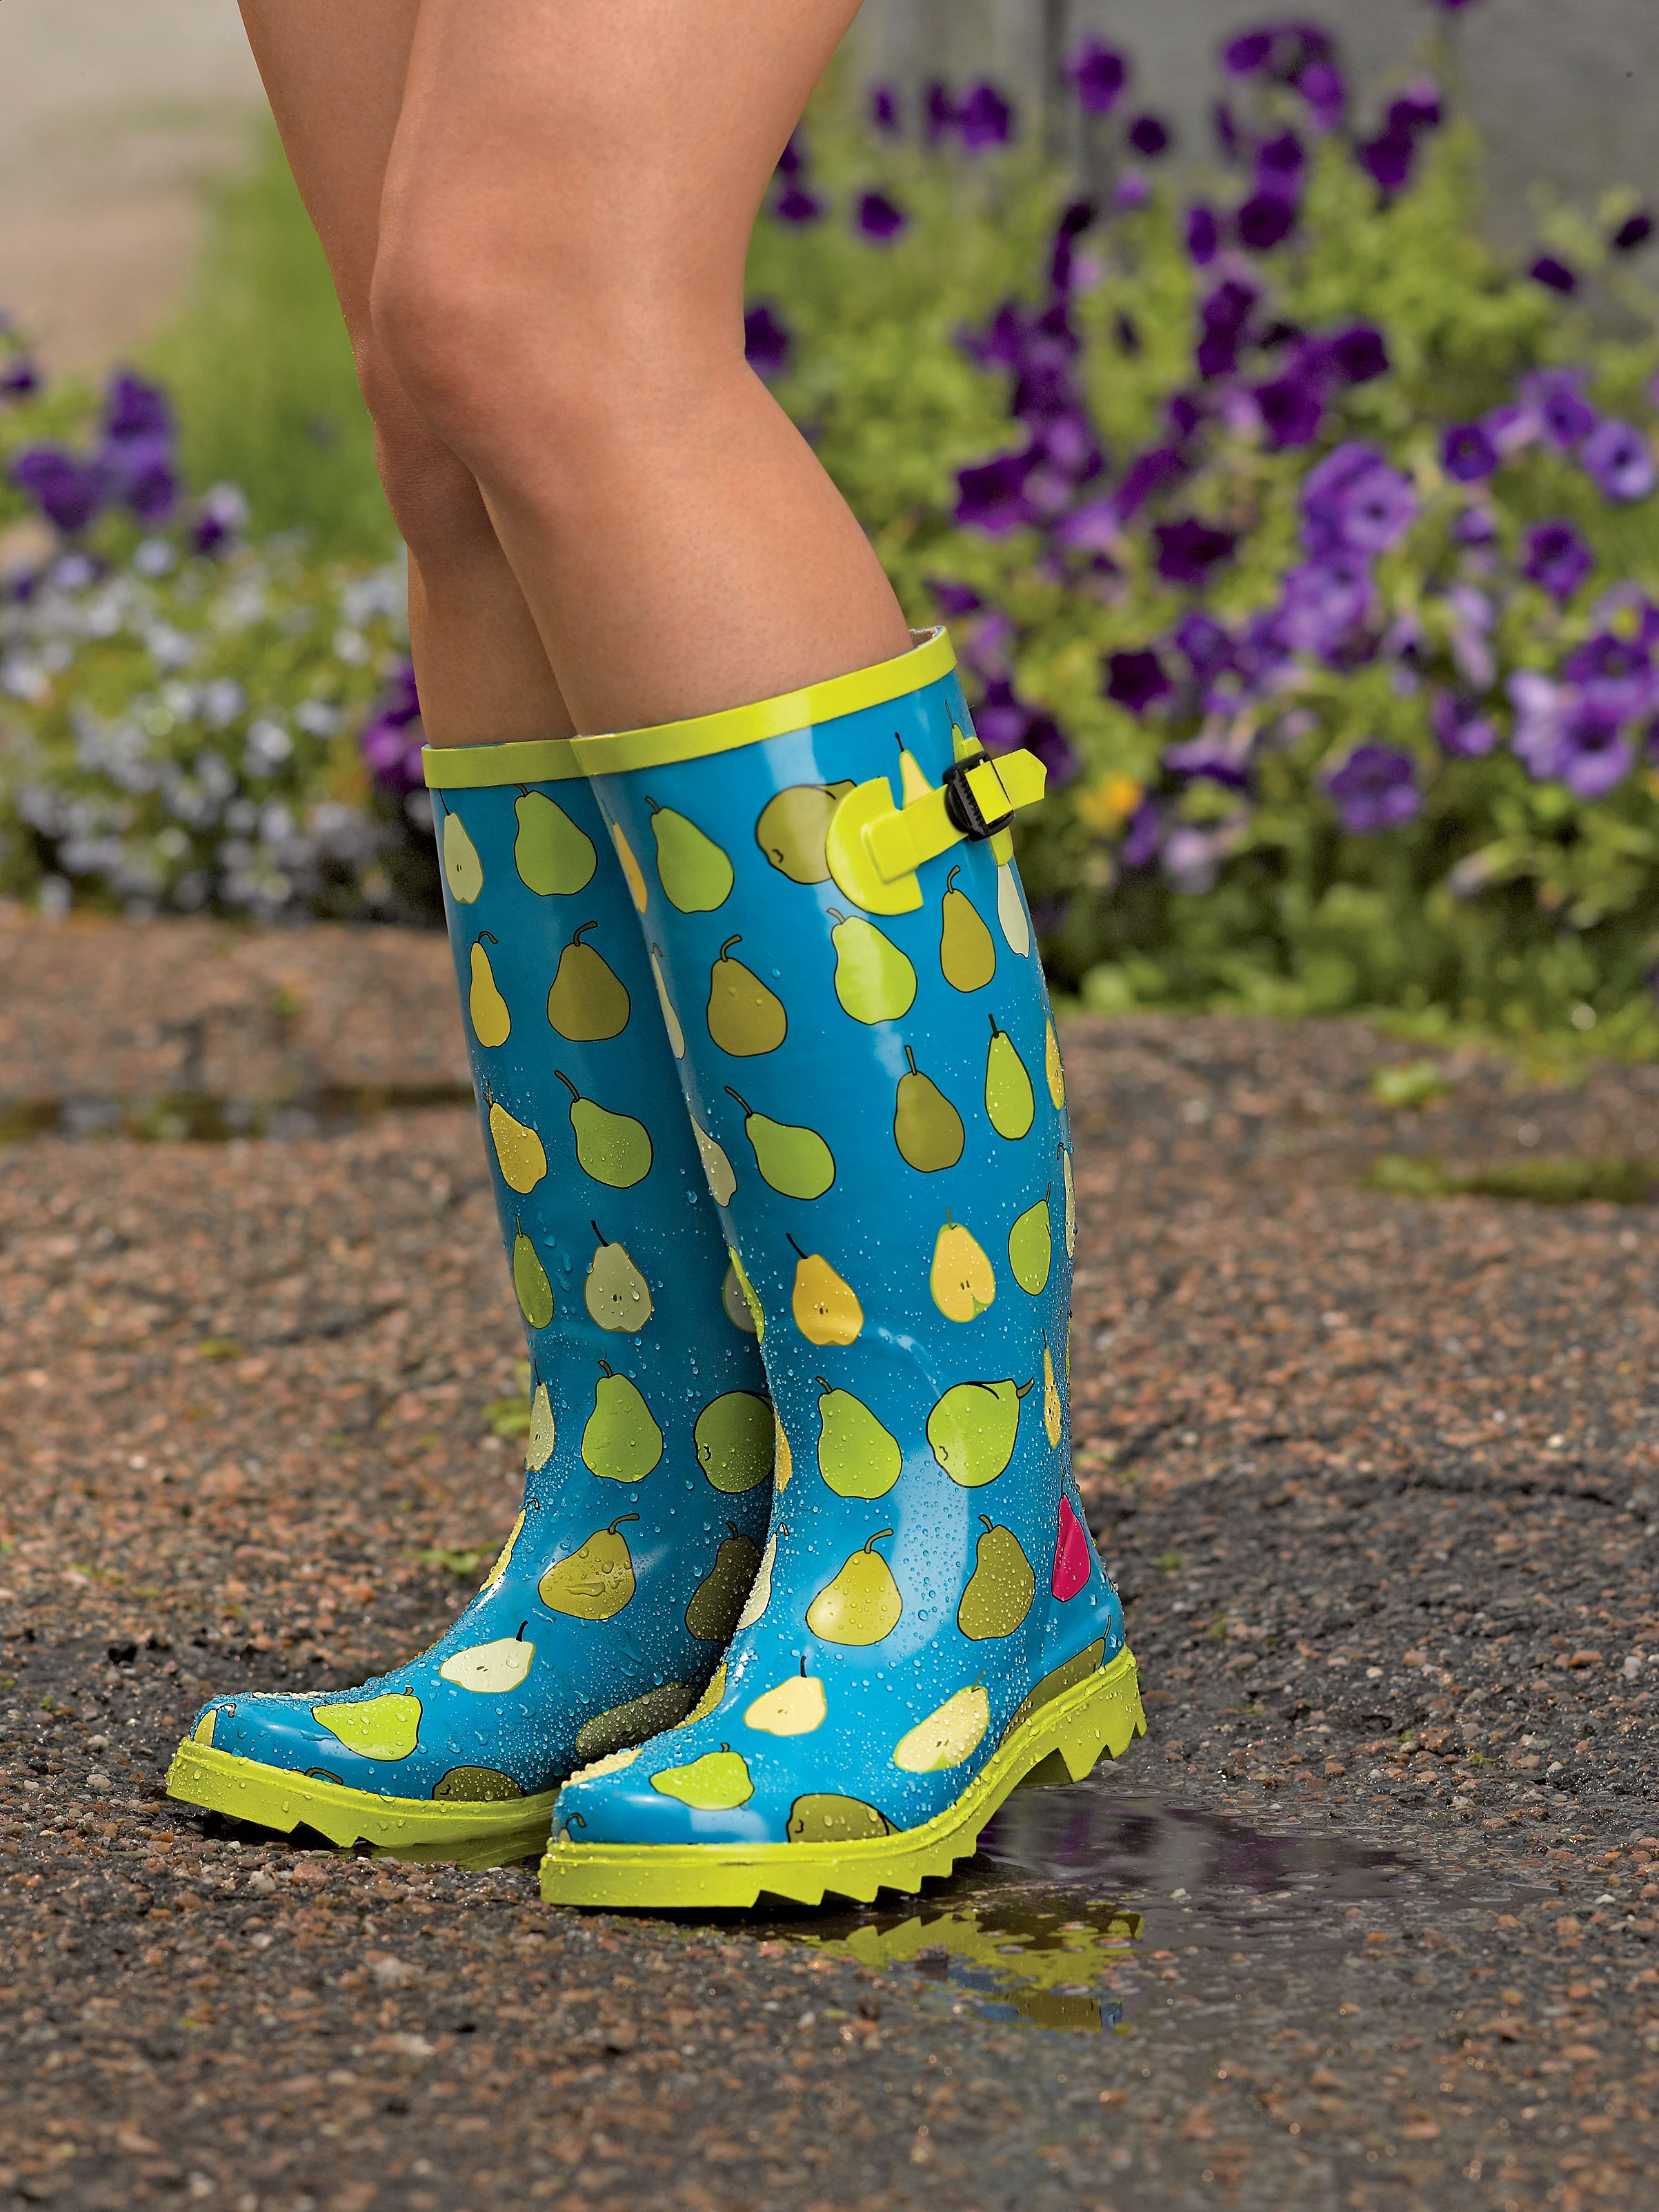 Gardener's Wellies | Buy from Gardener's Supply @Inga Gauldin - love these! MOM IM PINNING THESE BECAUSE MY WHALE RAINBOOTS HAVE HOLES AND THEY DONT WORK IM A SIZE 9